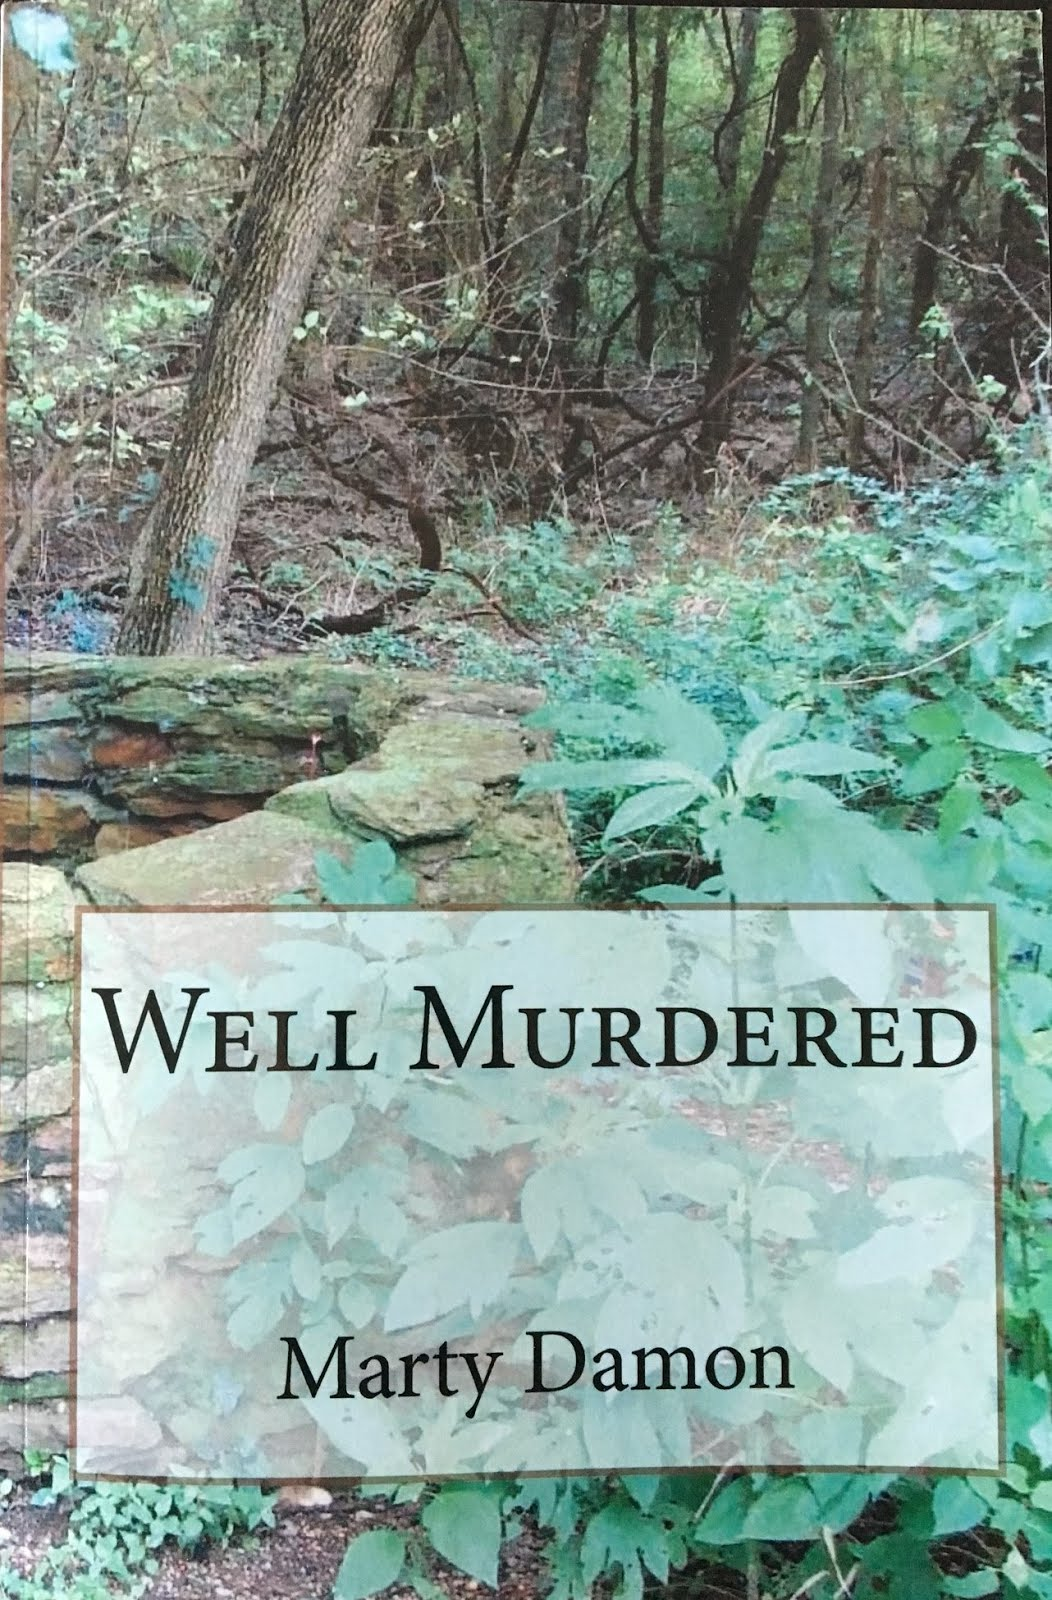 A touch of graft, drugs, and murder in the woods